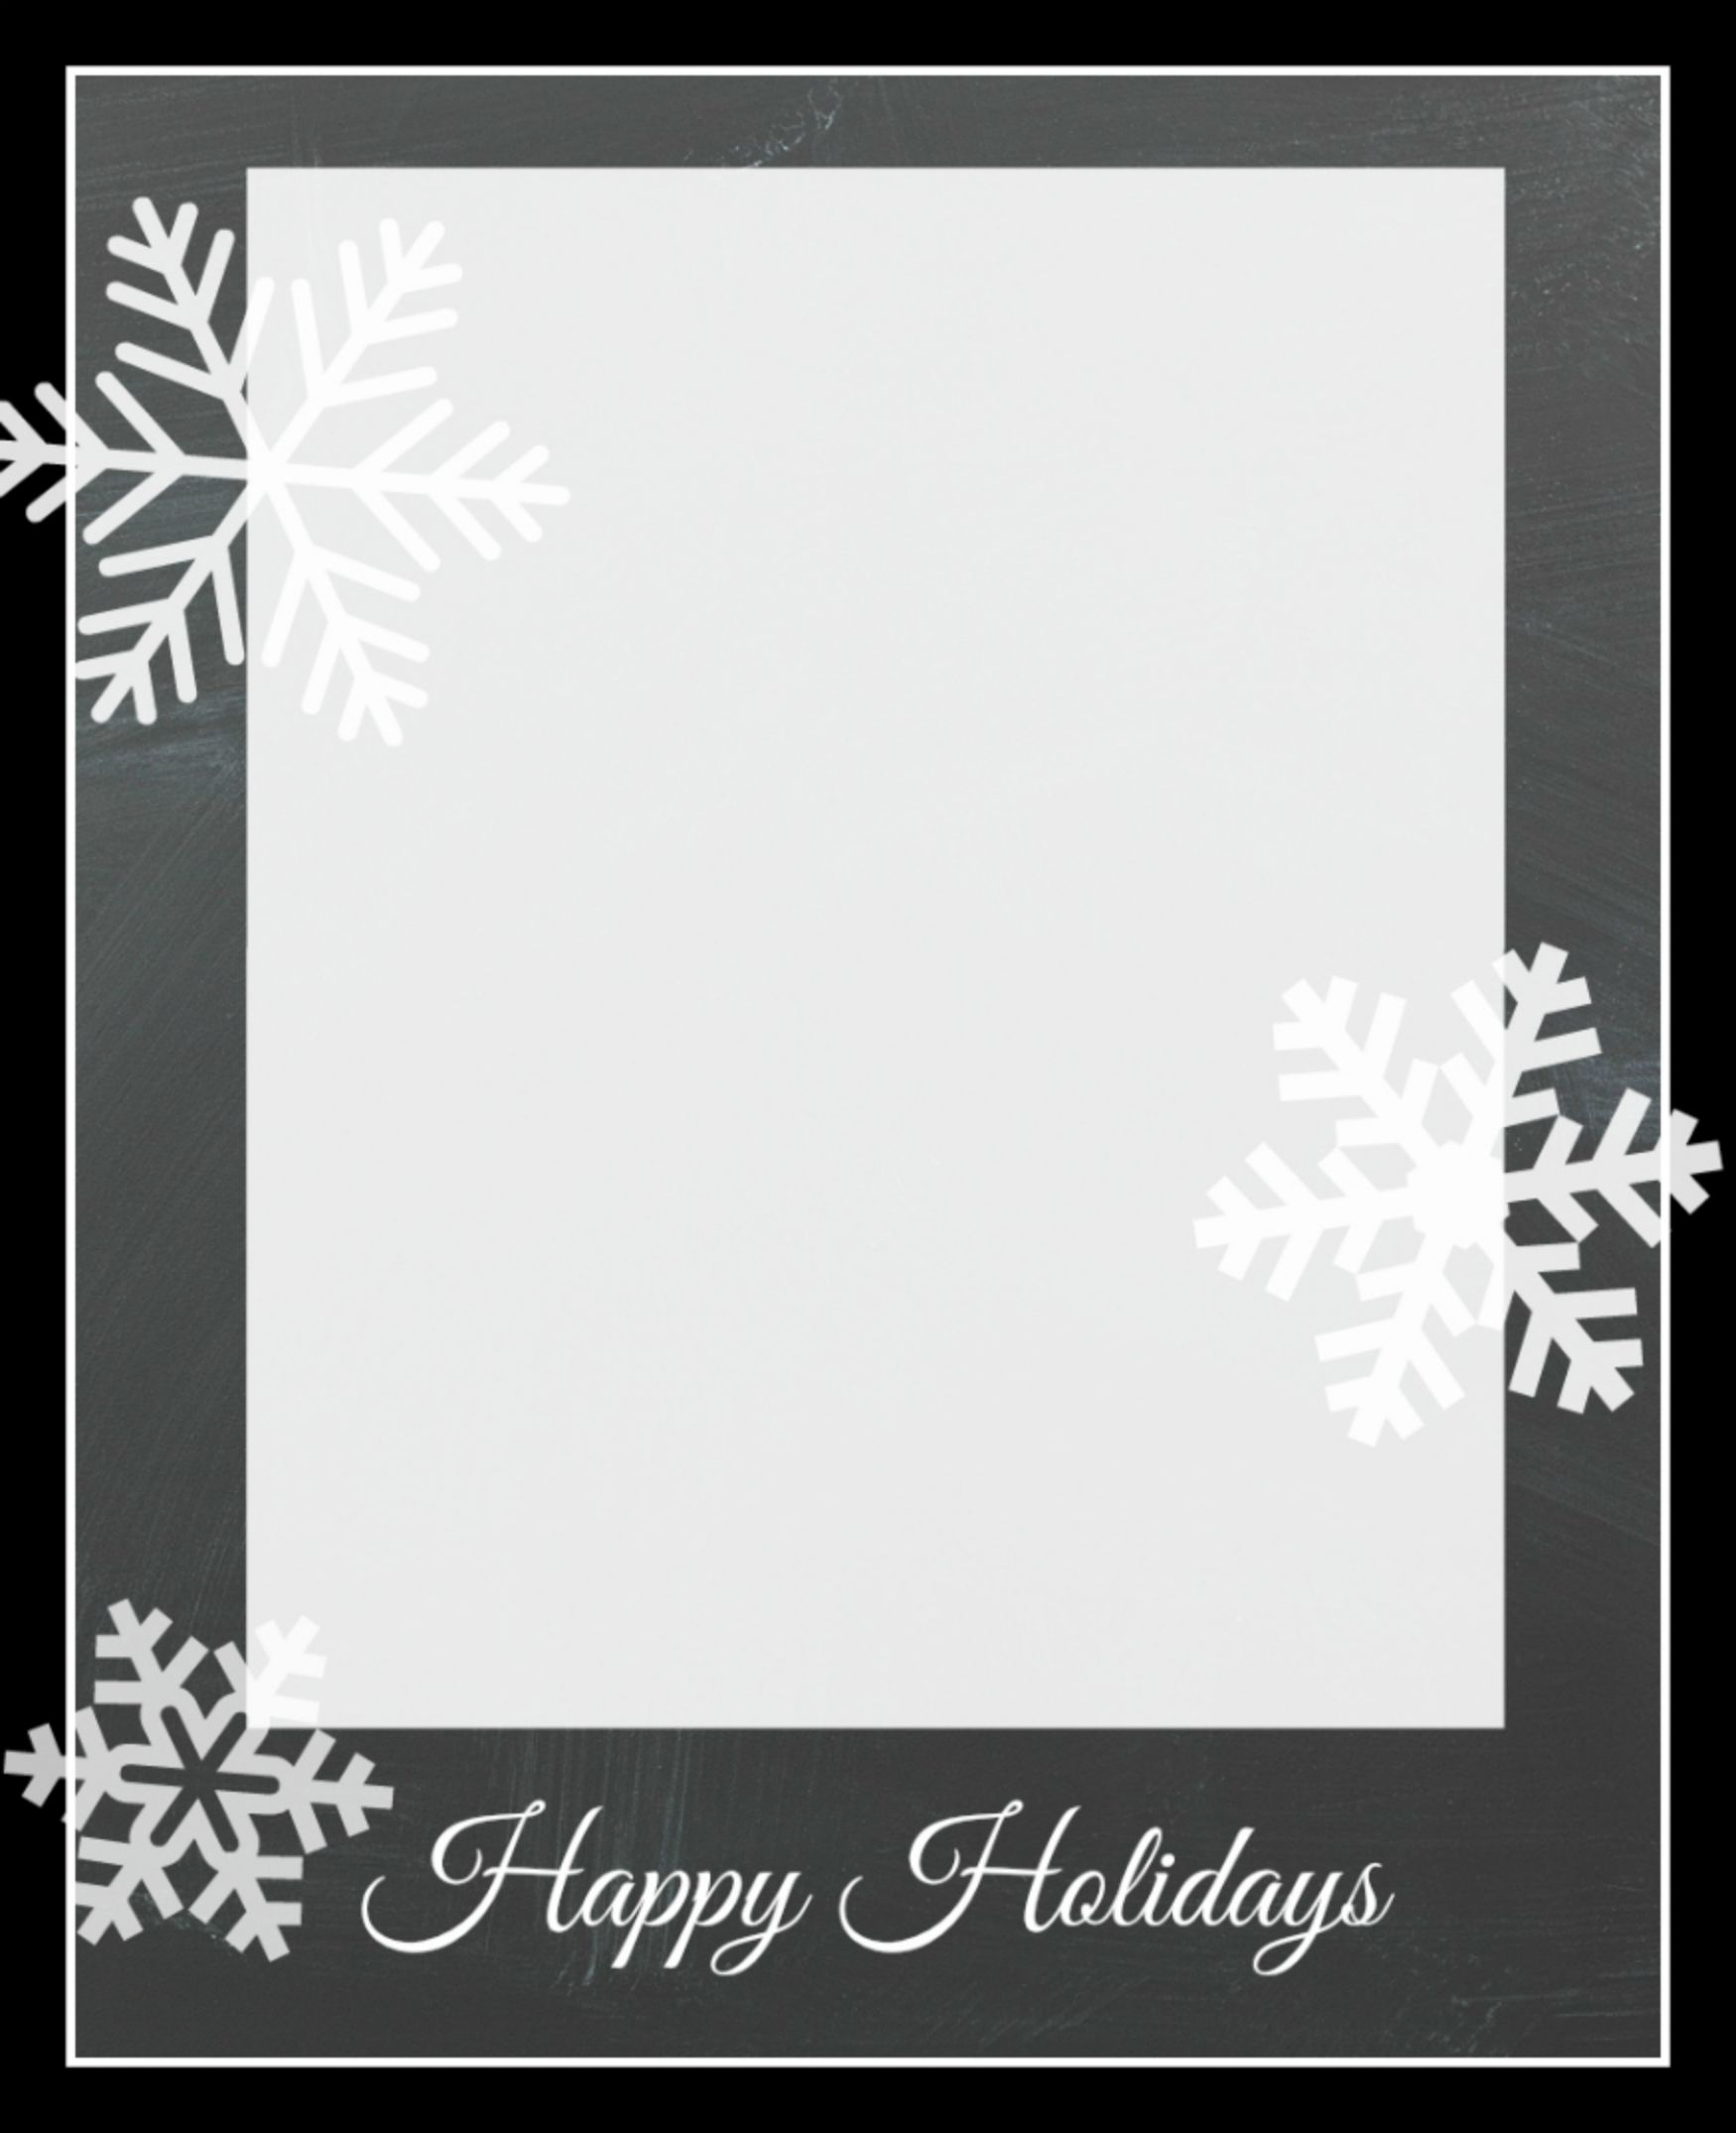 009 Unforgettable Free Download Holiday Card Template Photo Full